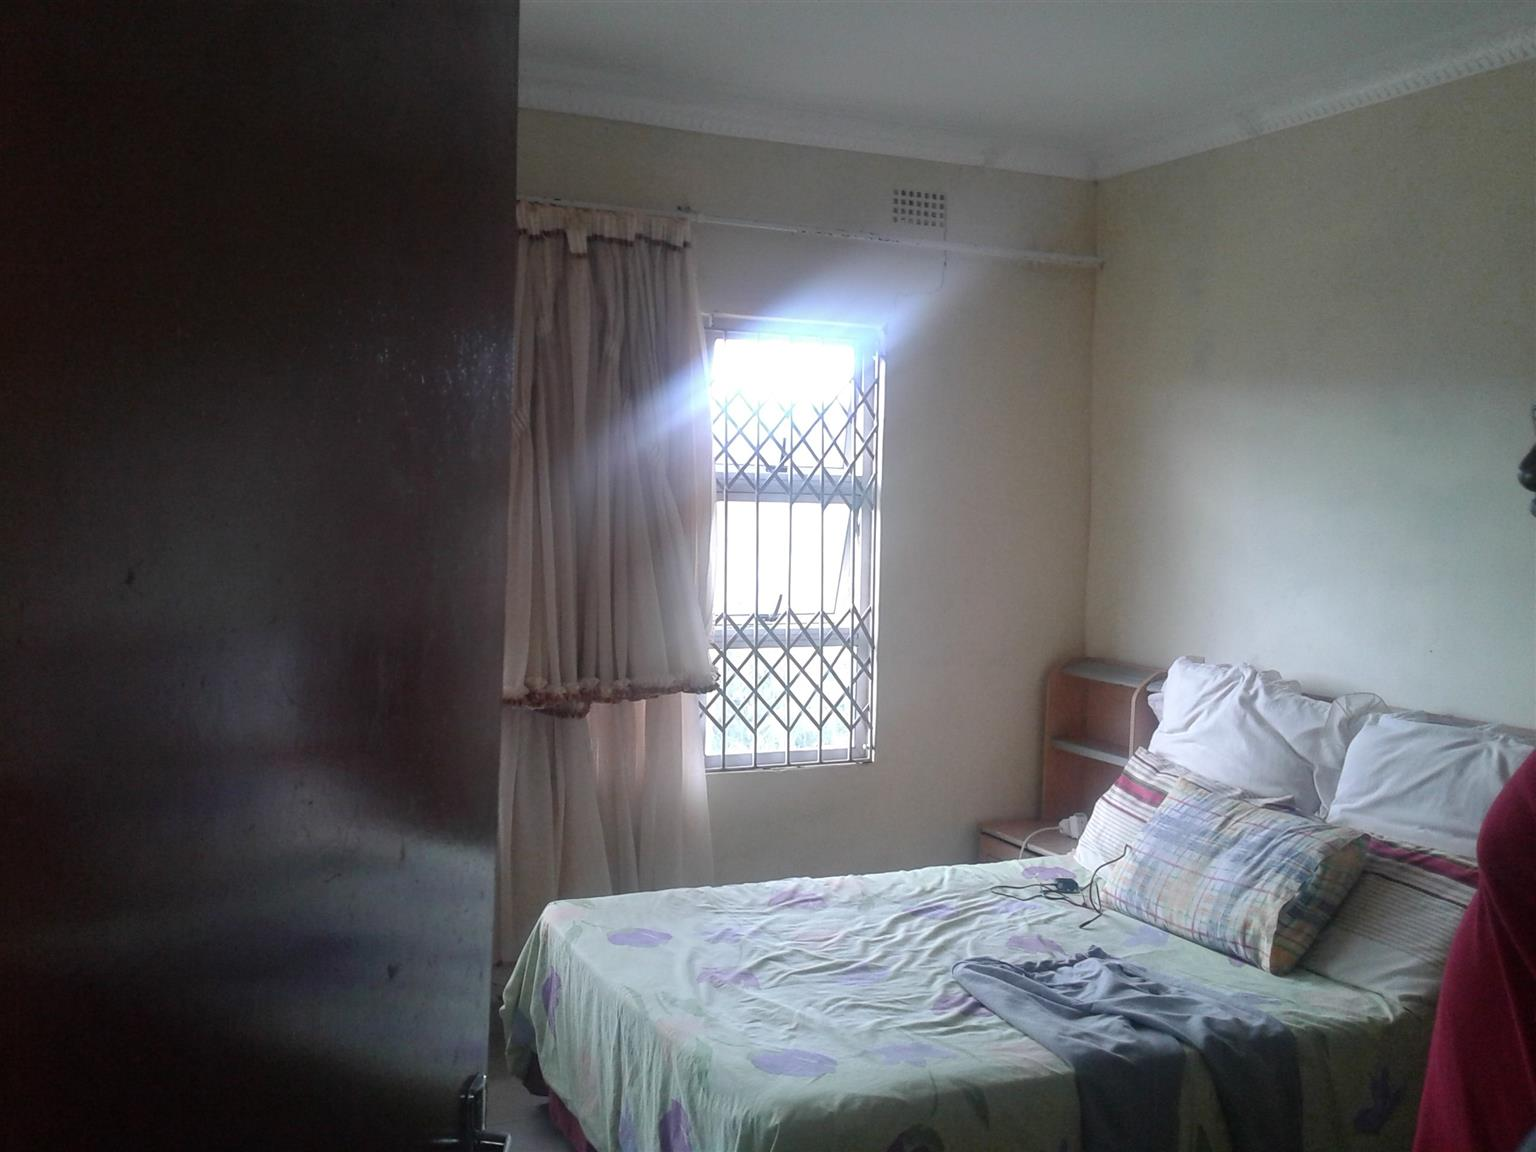 CONTRACTORS ACCOMMODATION KZN (We find Accommodation on Your behalf)